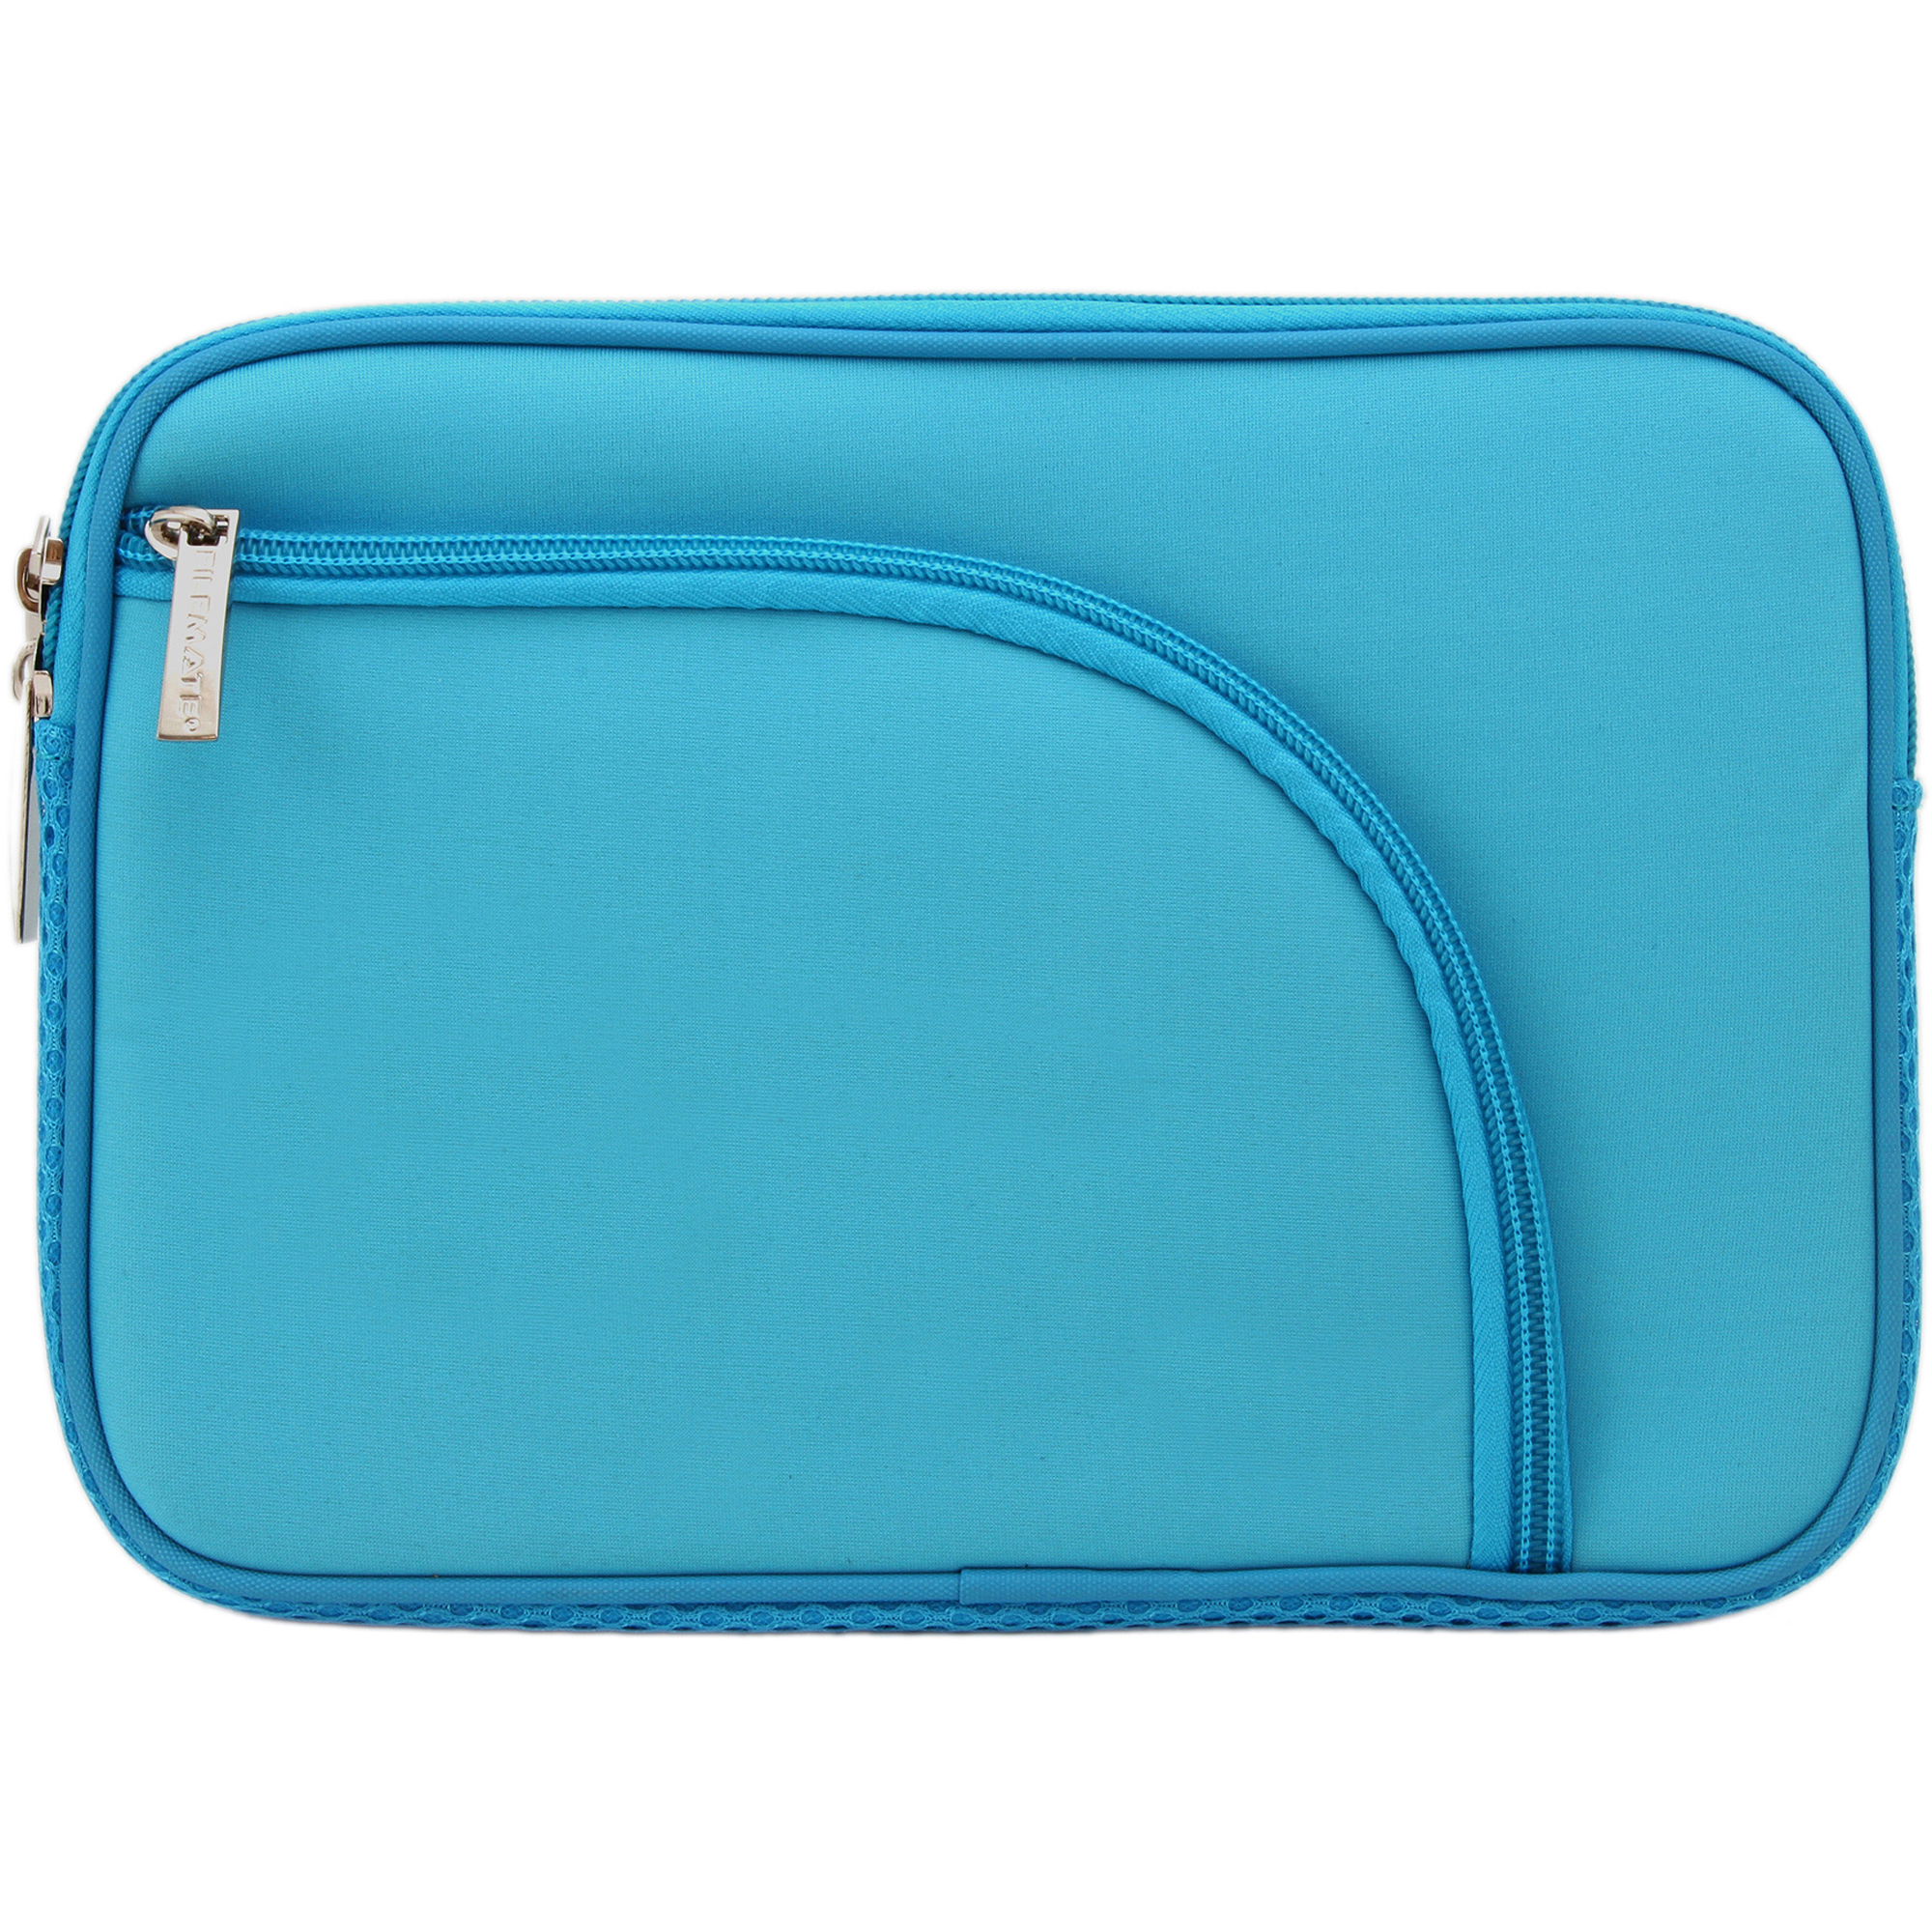 FileMate Imagine Series 7-in V210 Tablet Sleeve